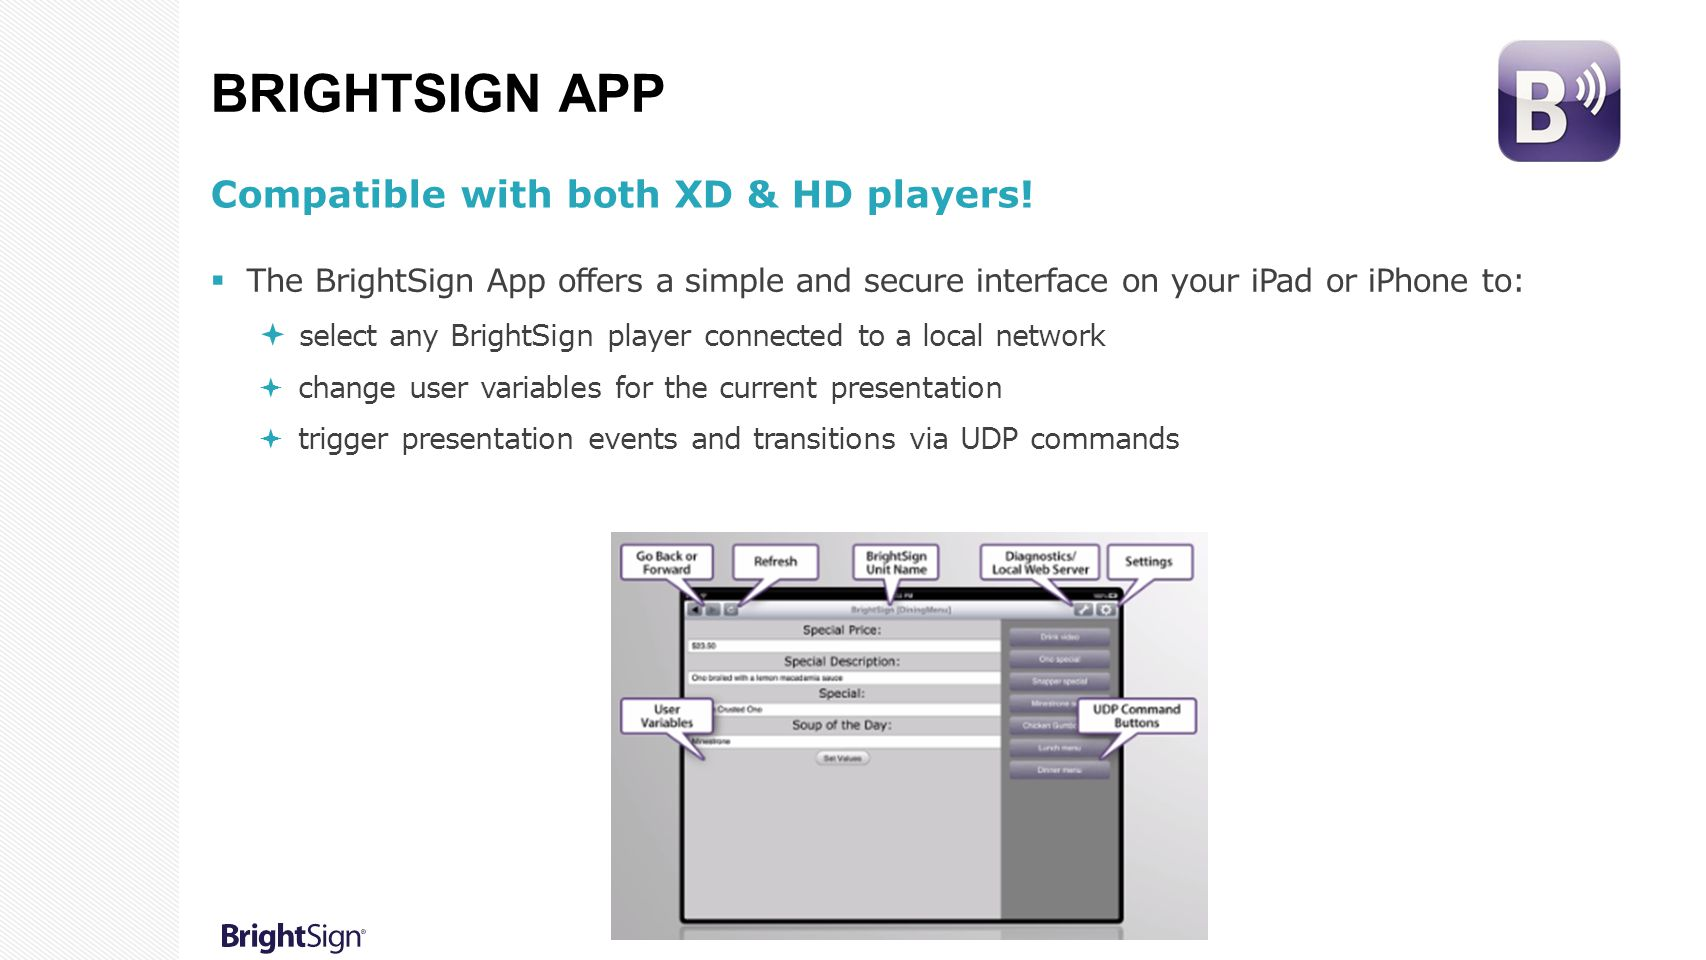 BRIGHTSIGN APP Compatible with both XD & HD players!  The BrightSign App offers a simple and secure interface on your iPad or iPhone to:  select any